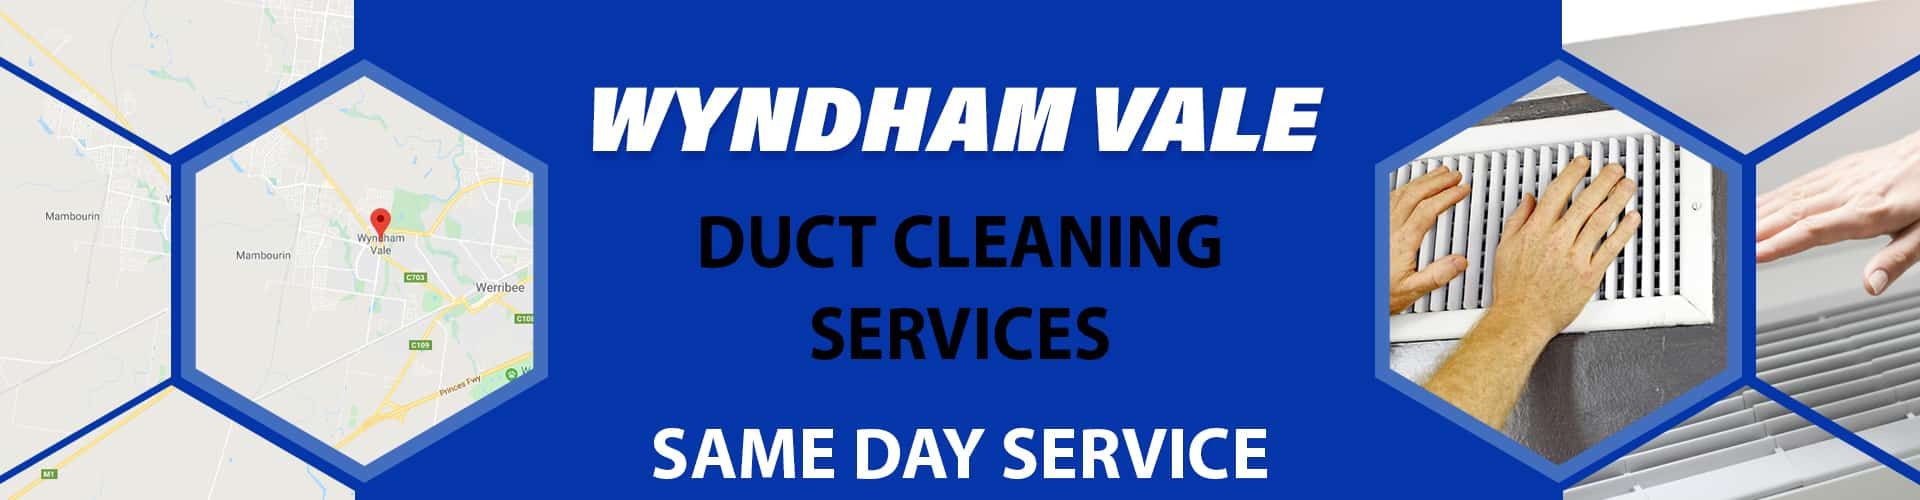 Duct Cleaning Wyndham Vale